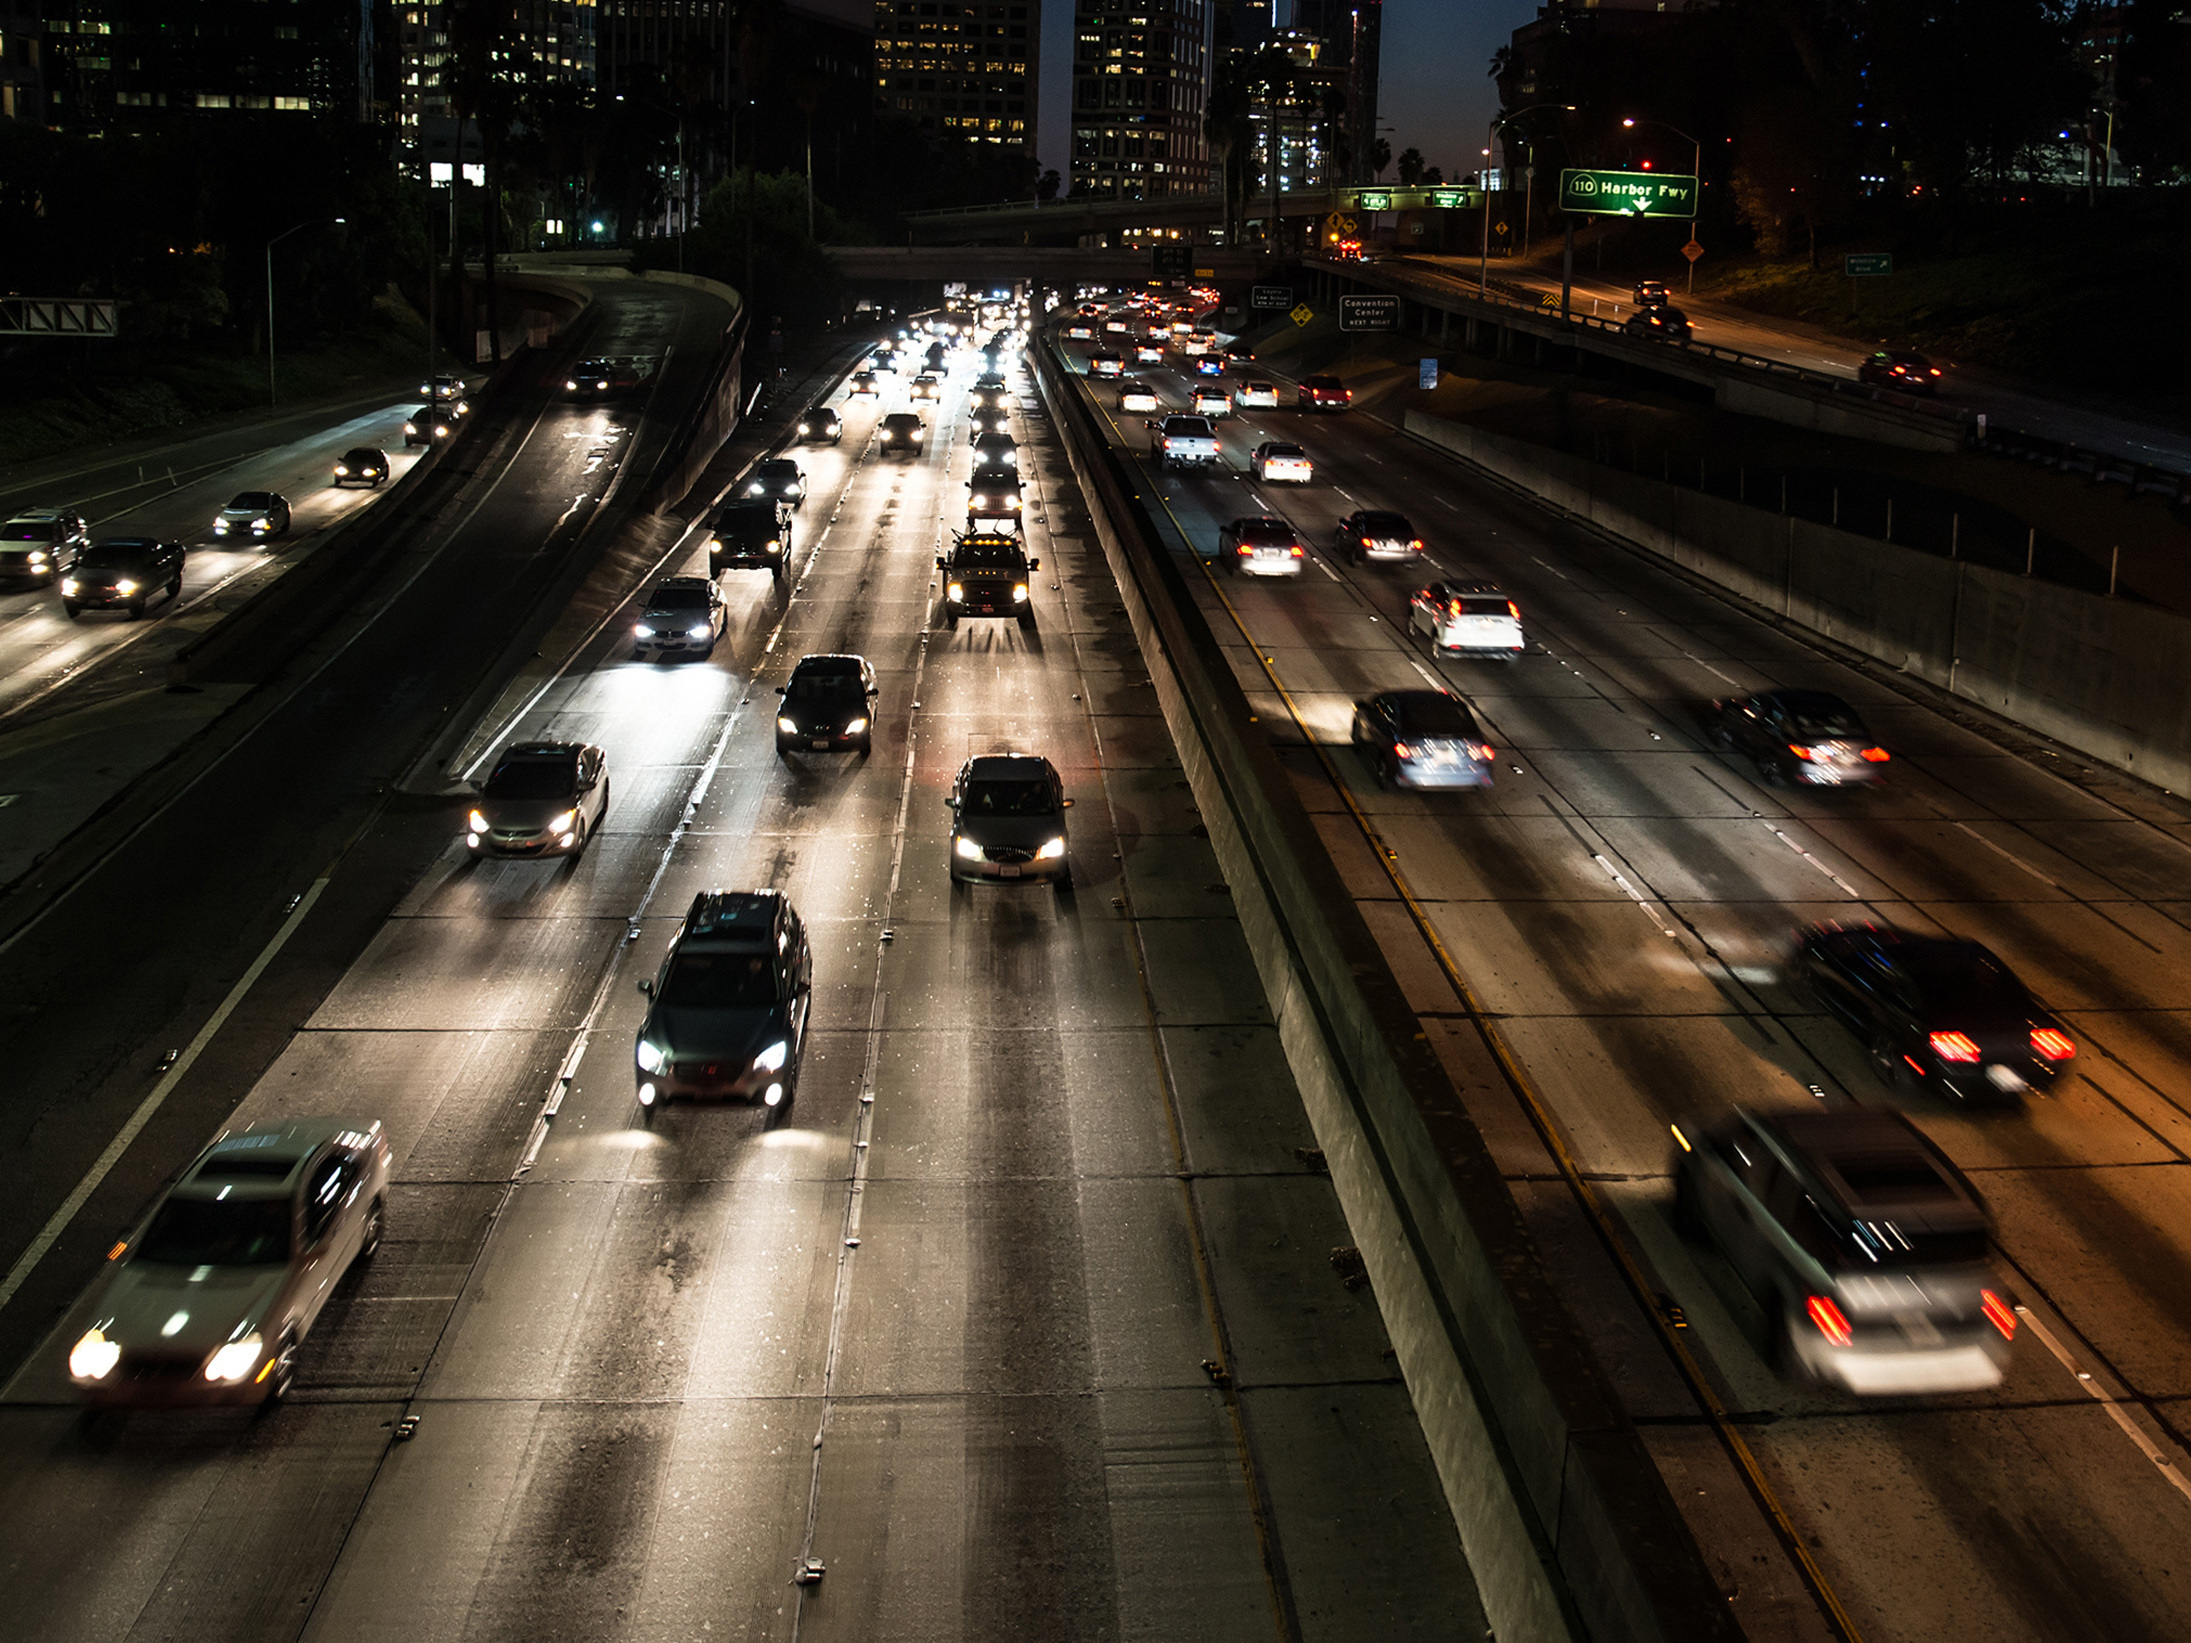 Road rage-related fatalities in the U.S. increased between 2011 and 2015.The police are investigating the killing of Nabra Hassanen, a Muslim teen, as a road rage incident.Traffic jams up on the Kennedy Expressway leaving the city for the Memorial Day weekend in 2014 in Chicago, Ill.Road rage-related fatalities in the U.S. increased between 2011 and 2015.The police are investigating the killing of Nabra Hassanen, a Muslim teen, as a road rage incident.Traffic jams up on the Kennedy Expressway leaving the city for the Memorial Day weekend in 2014 in Chicago, Ill.Road rage-related fatalities in the U.S. increased between 2011 and 2015.The police are investigating the killing of Nabra Hassanen, a Muslim teen, as a road rage incident.Traffic jams up on the Kennedy Expressway leaving the city for the Memorial Day weekend in 2014 in Chicago, Ill.